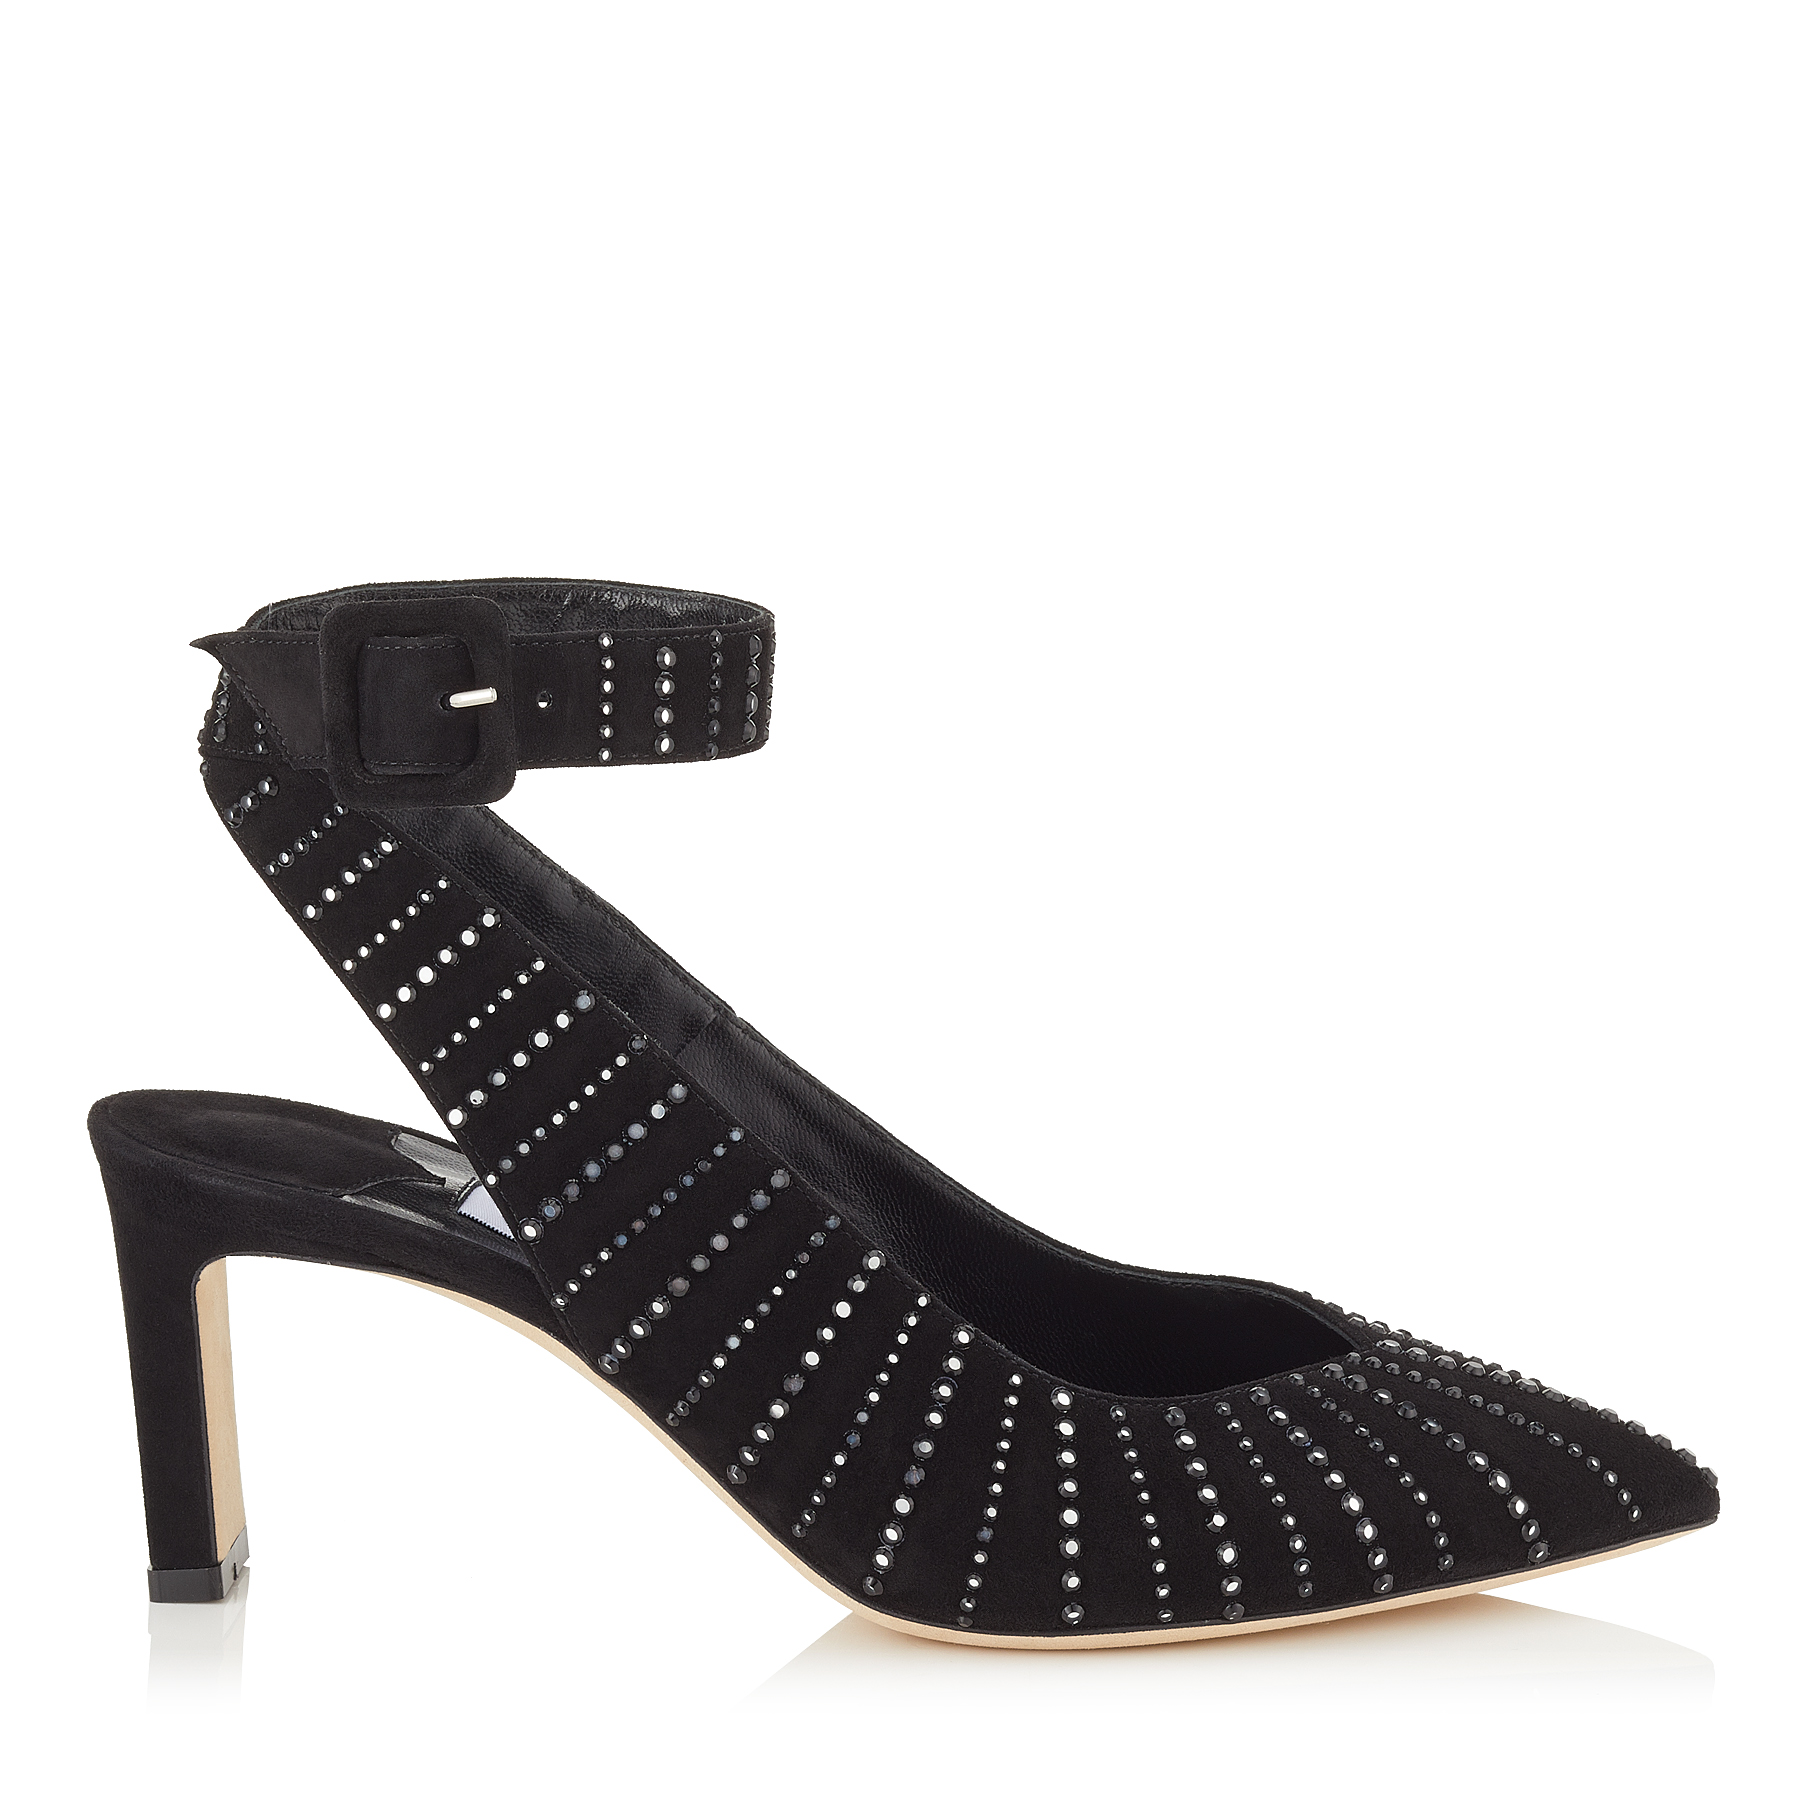 LOU 65 Black Suede Pumps with Silver Mirror Hotfix by Jimmy Choo